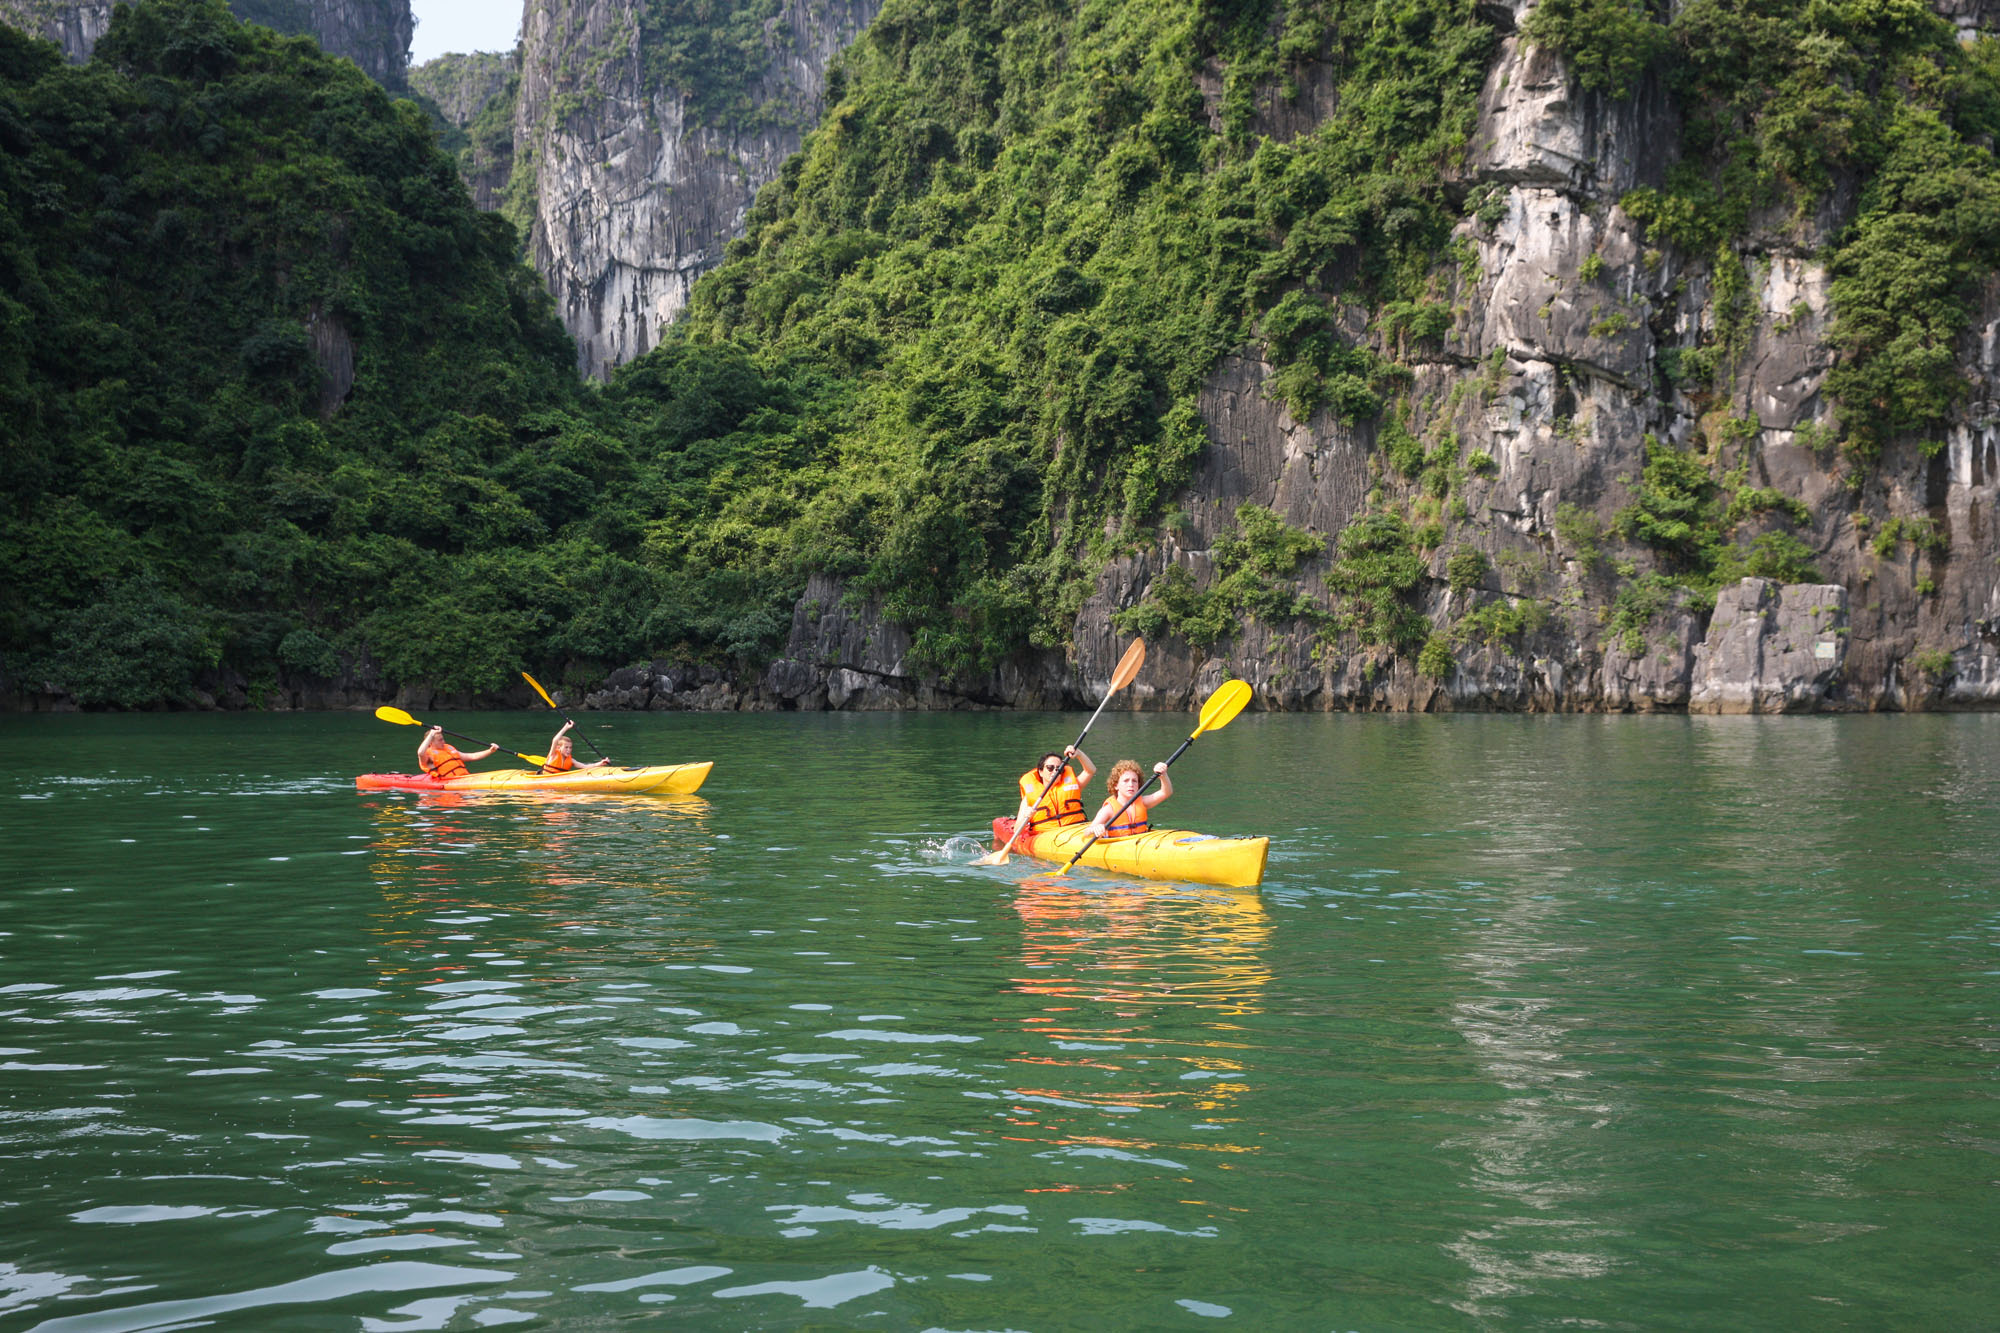 HA LONG BAY 2 DAYS - 1 NIGHT SLEEP ON THE 3 STAR BOAT 17